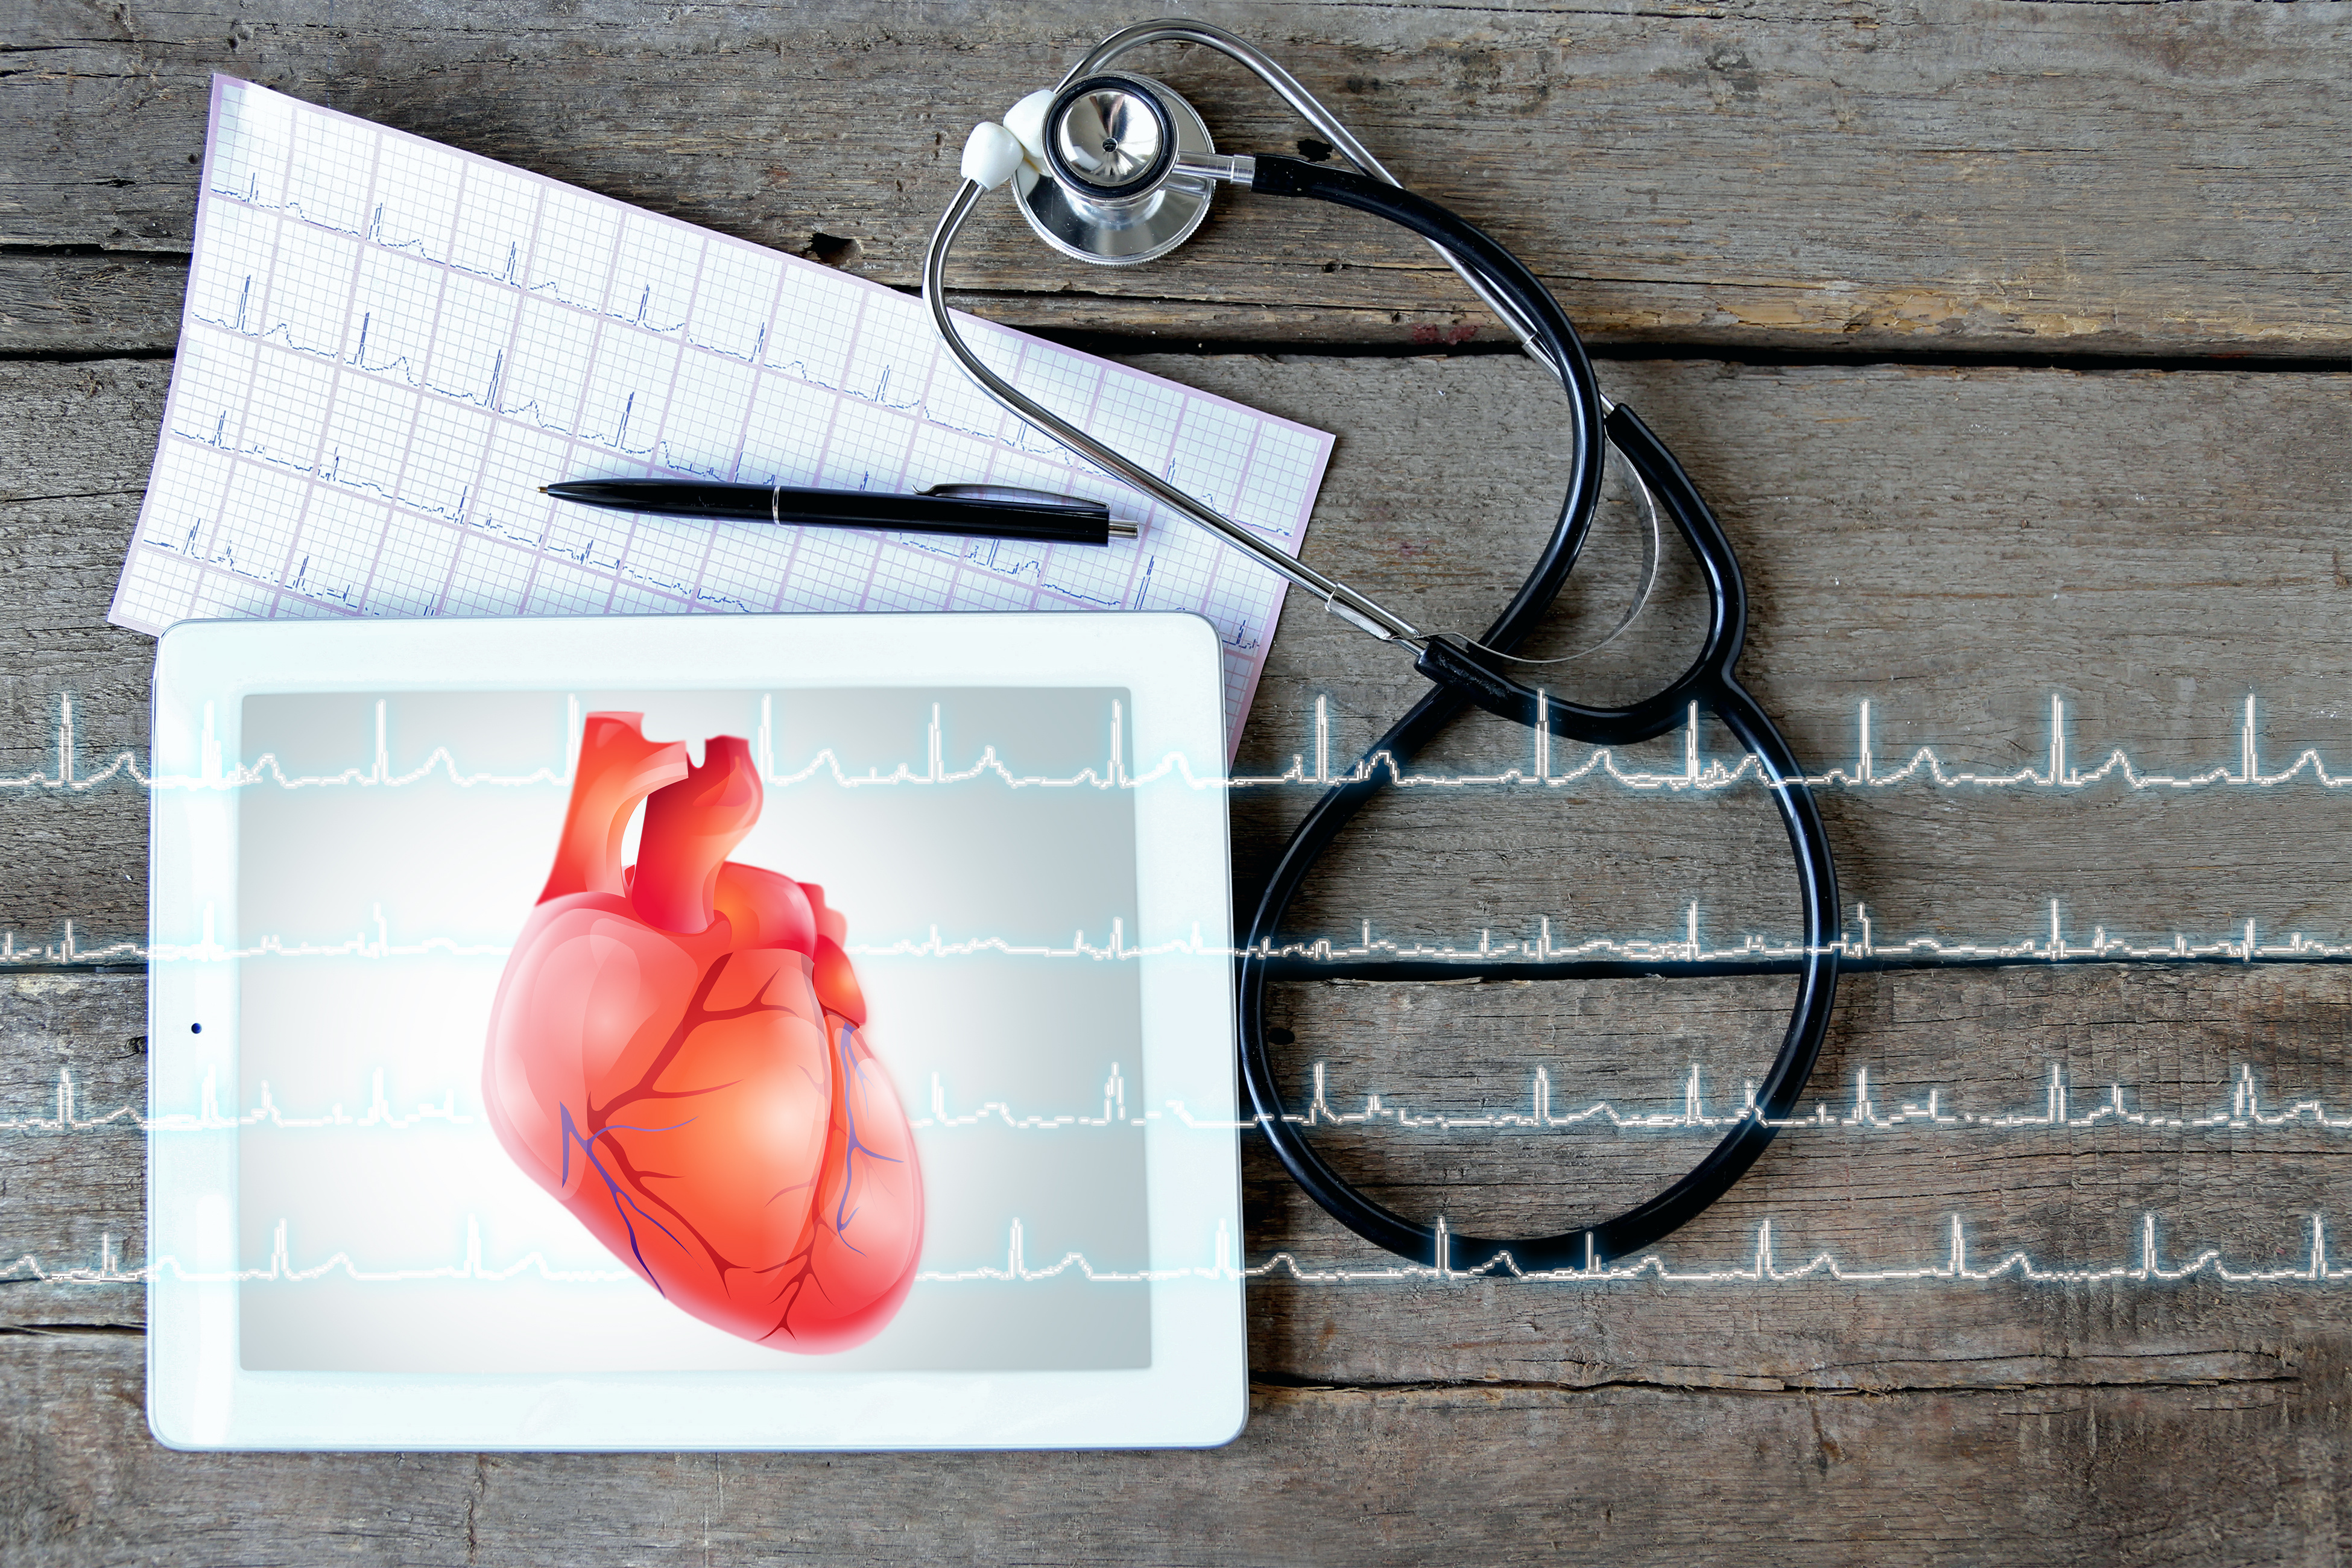 Tablet with stethoscope on wooden background. Heart on screen. Medicine and modern technology concept.